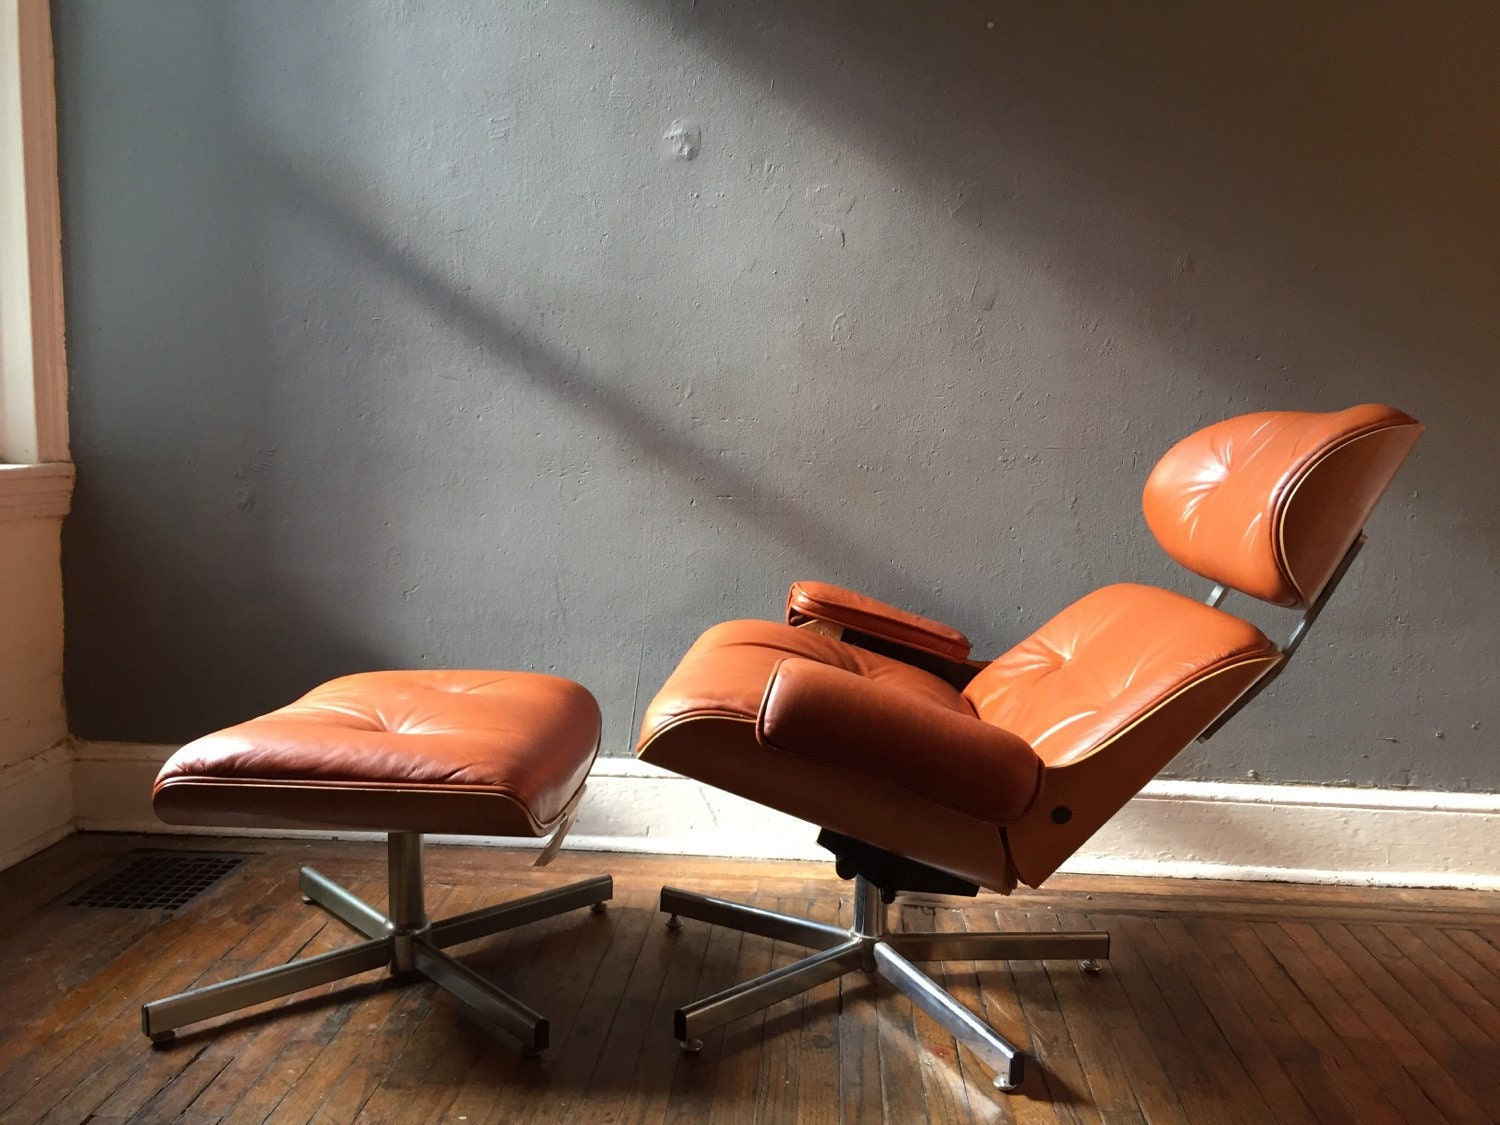 Eames lounge chair and ottoman italian made replica on original design haute juice - Eames lounge chair and ottoman reproduction ...